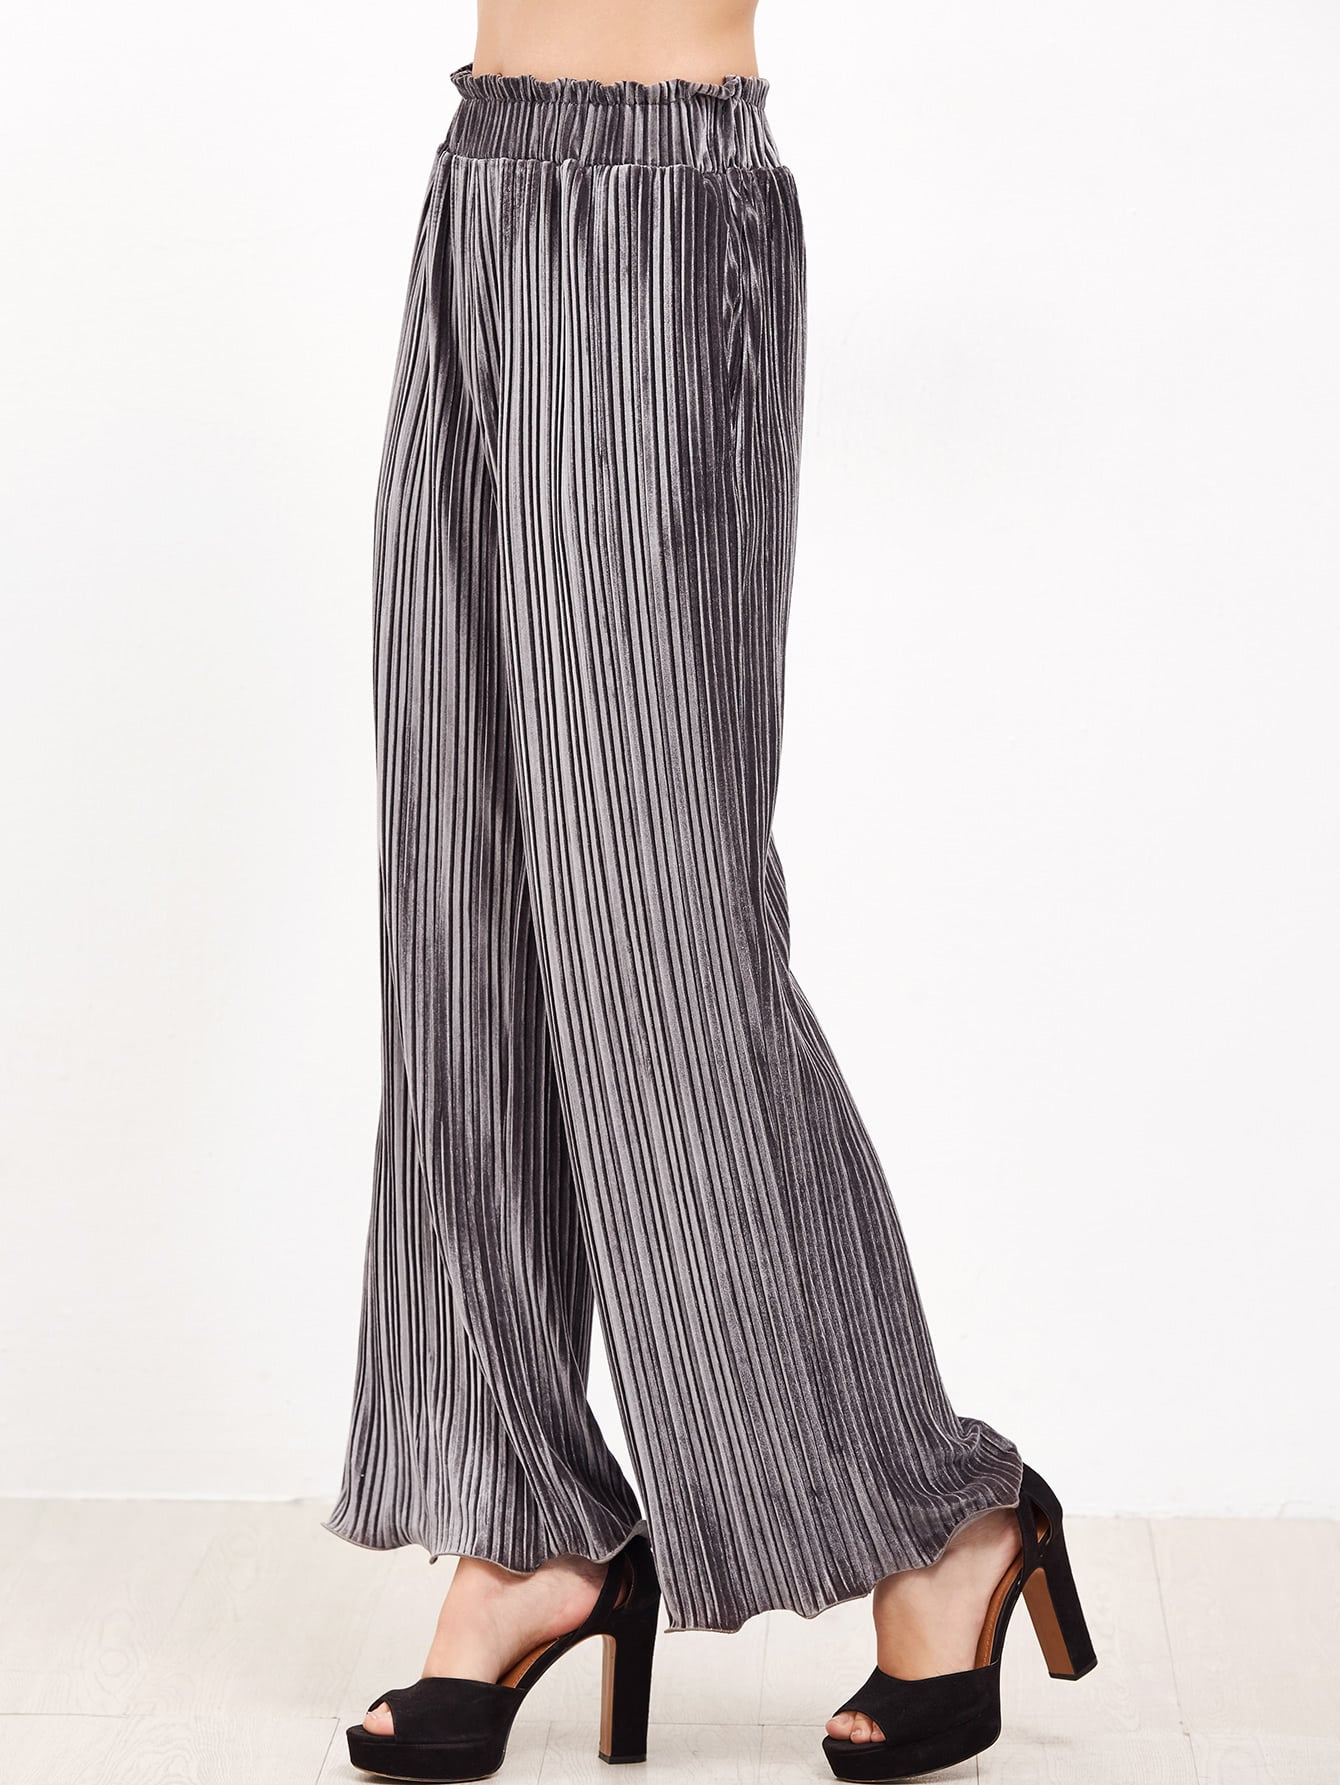 Grey Frilled Waist And Hem Wide Leg Pleated Velvet PantsGrey Frilled Waist And Hem Wide Leg Pleated Velvet Pants<br><br>color: Grey<br>size: M,S,XS